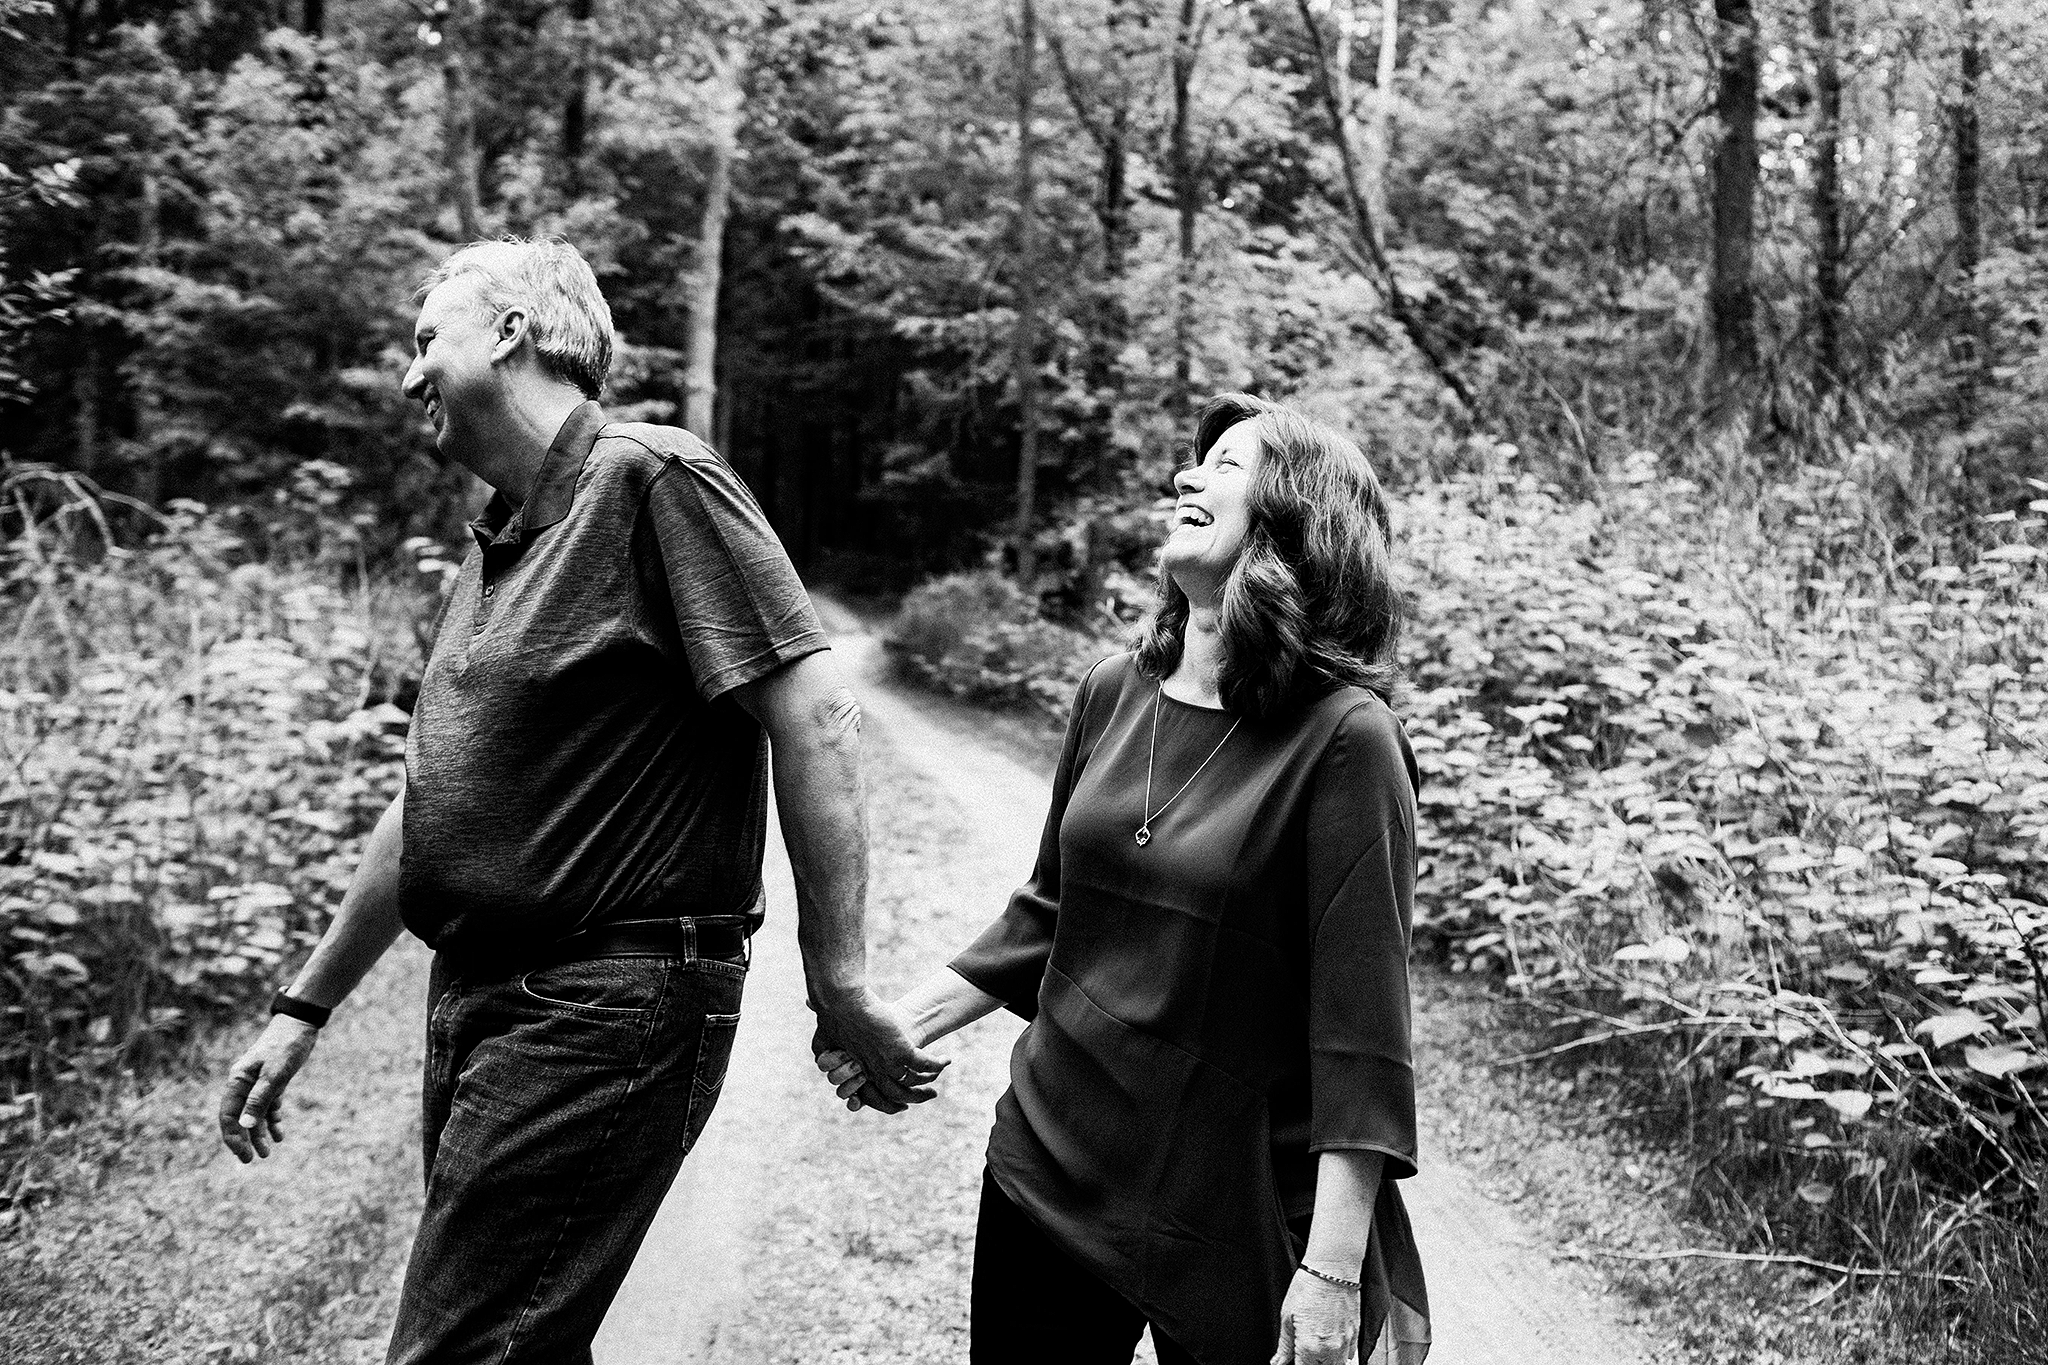 Mature couple laughing in the forest | Sheboygan, WI photographer | Chrissy Deming photography